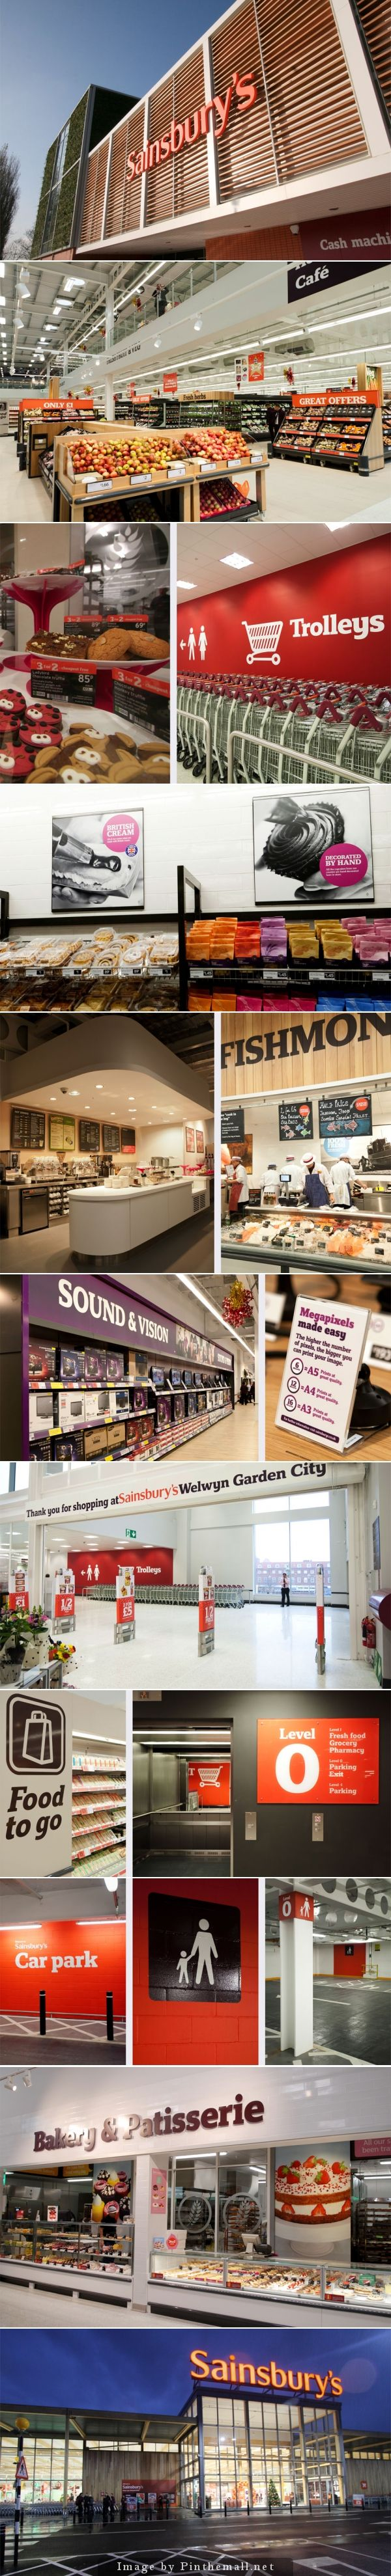 Nice  Best Ideas About Welwyn Garden City Fc On Pinterest  Printed  With Outstanding Welwyn Garden City Is A Complete Refresh Of The Instore Brand Look And  Feel As With Extraordinary Gardens For U Also Garden Lamp Posts Uk In Addition Slabs For Garden And Haskins Garden Centre Worthing As Well As Soil Improvement Techniques Garden Additionally Garden Recording Studio From Ukpinterestcom With   Extraordinary  Best Ideas About Welwyn Garden City Fc On Pinterest  Printed  With Nice Haskins Garden Centre Worthing As Well As Soil Improvement Techniques Garden Additionally Garden Recording Studio And Outstanding Welwyn Garden City Is A Complete Refresh Of The Instore Brand Look And  Feel As Via Ukpinterestcom